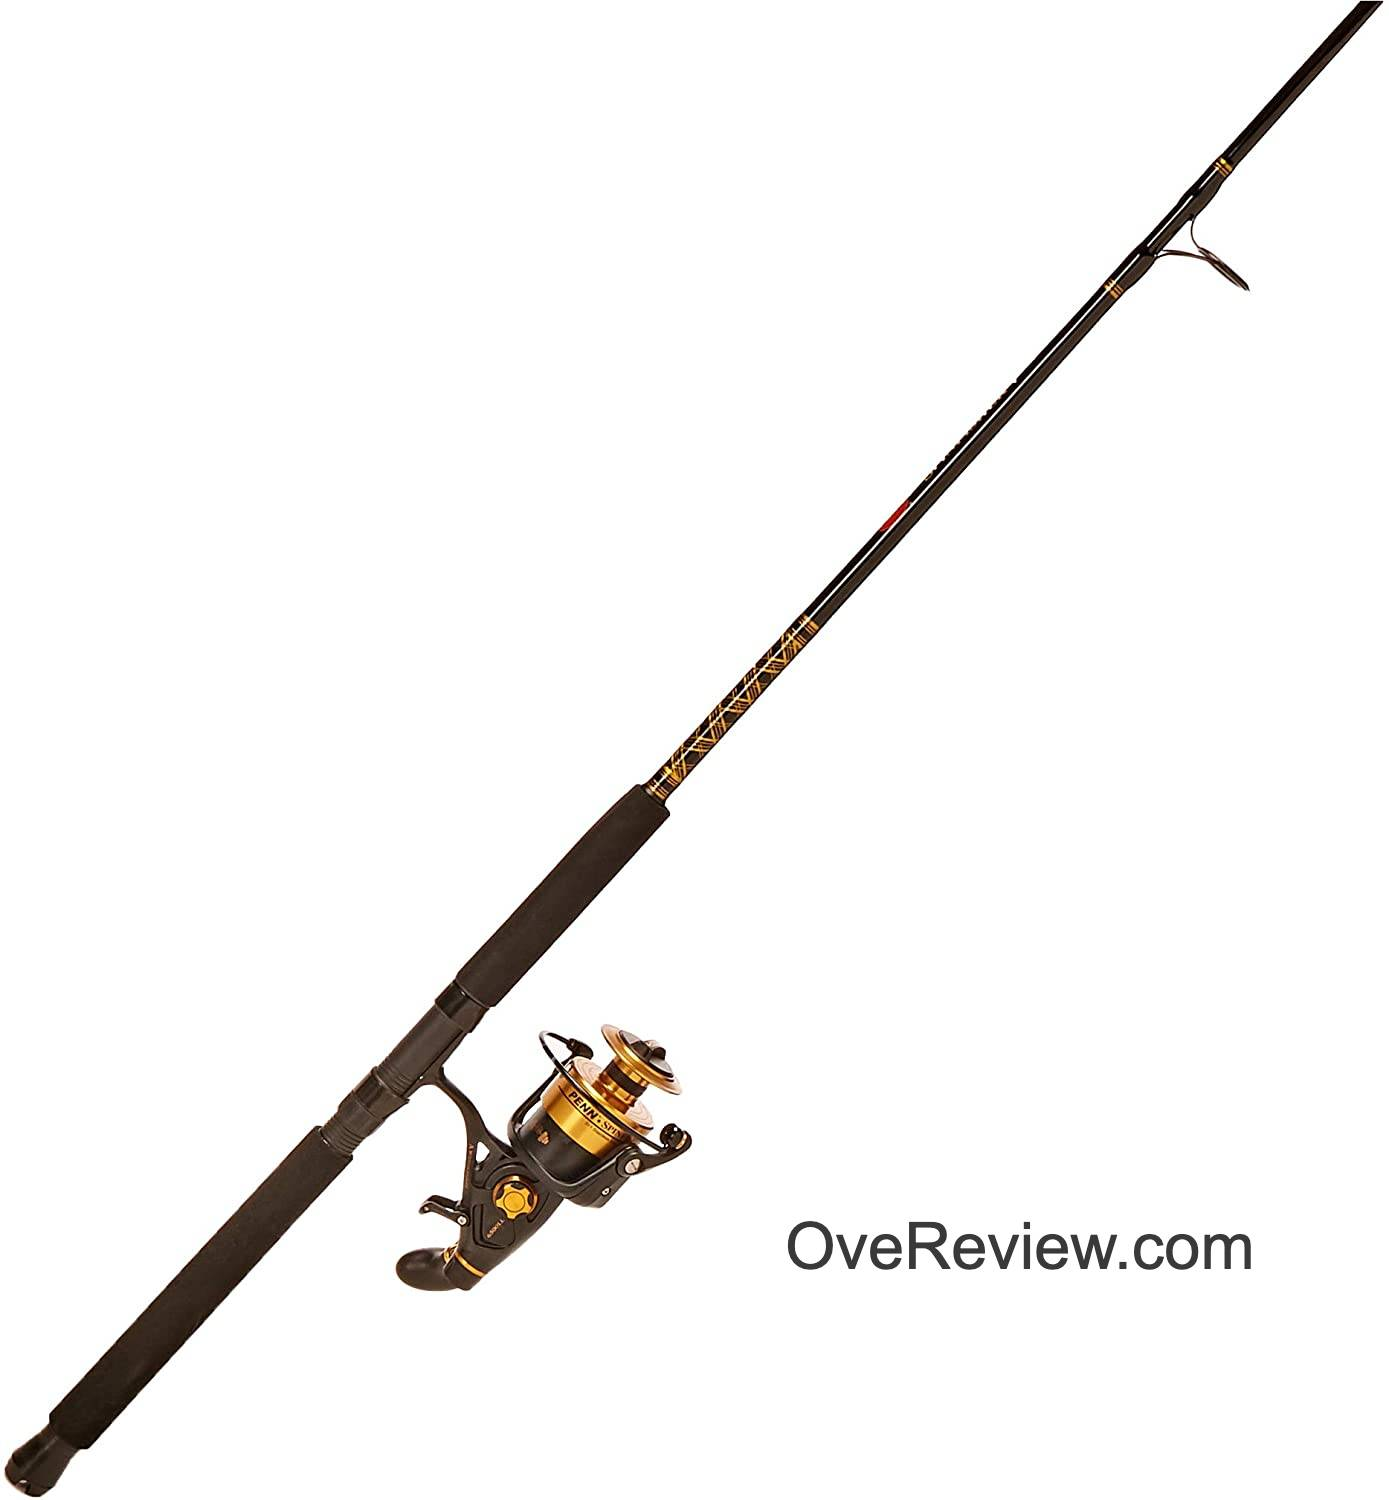 Top 12 Best Fishing Poles of 2021 - {Buyer's Guide} 6